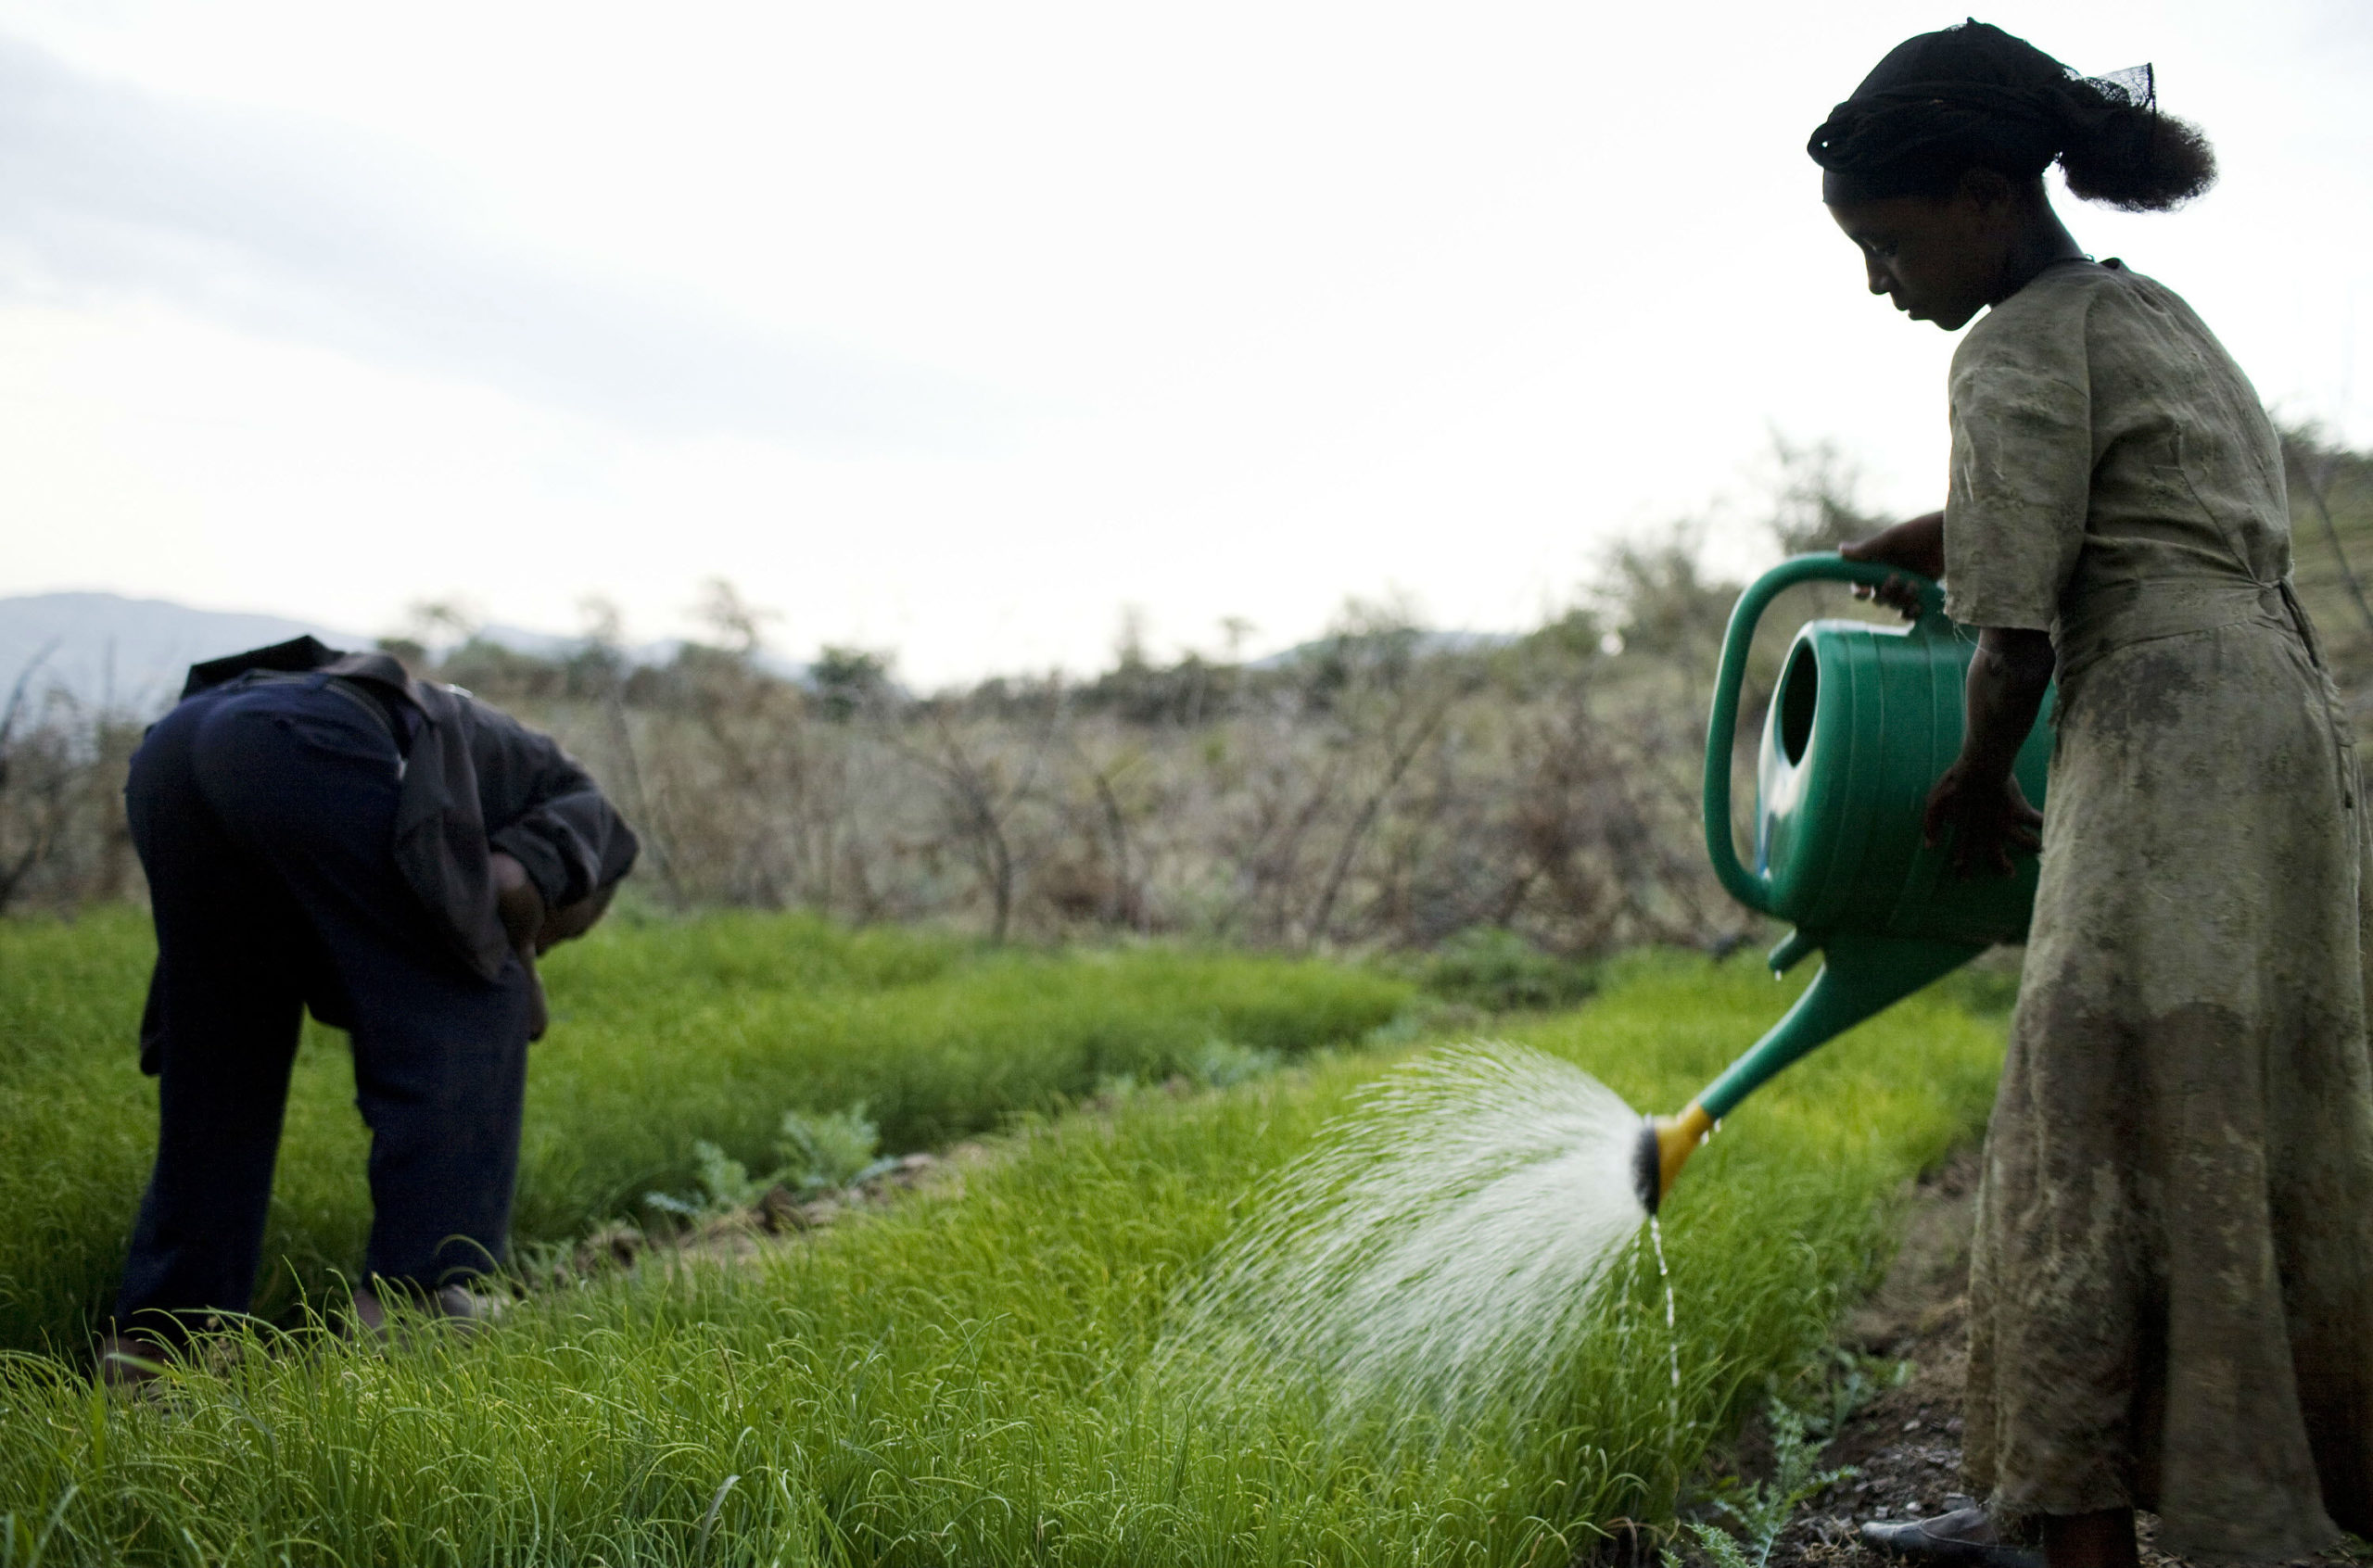 Boosting R&D capacity for sustainable agriculture